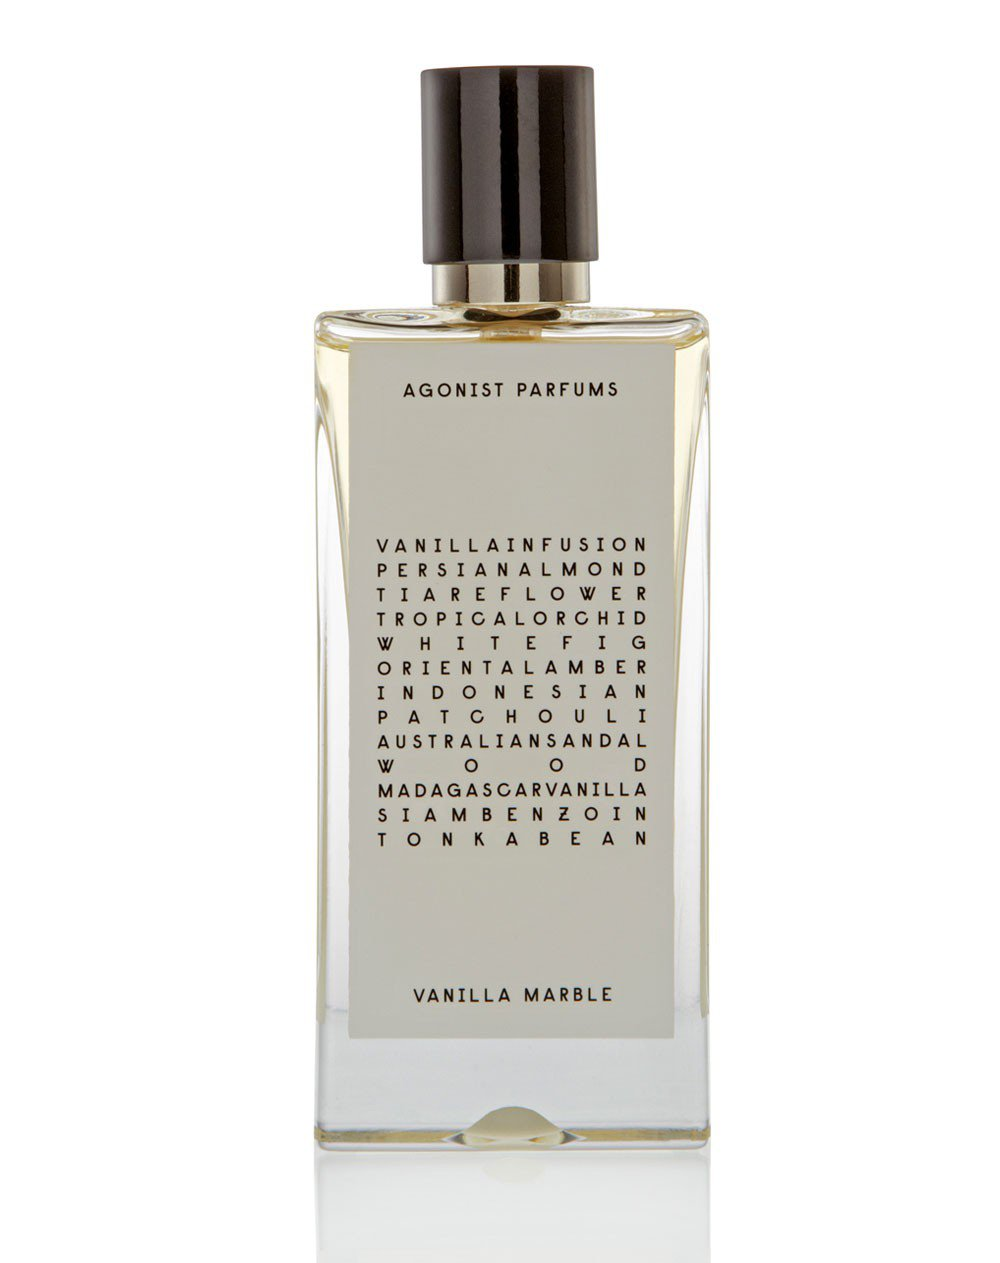 Vanilla Marble Agonist Perfume A Fragrance For Women And Men